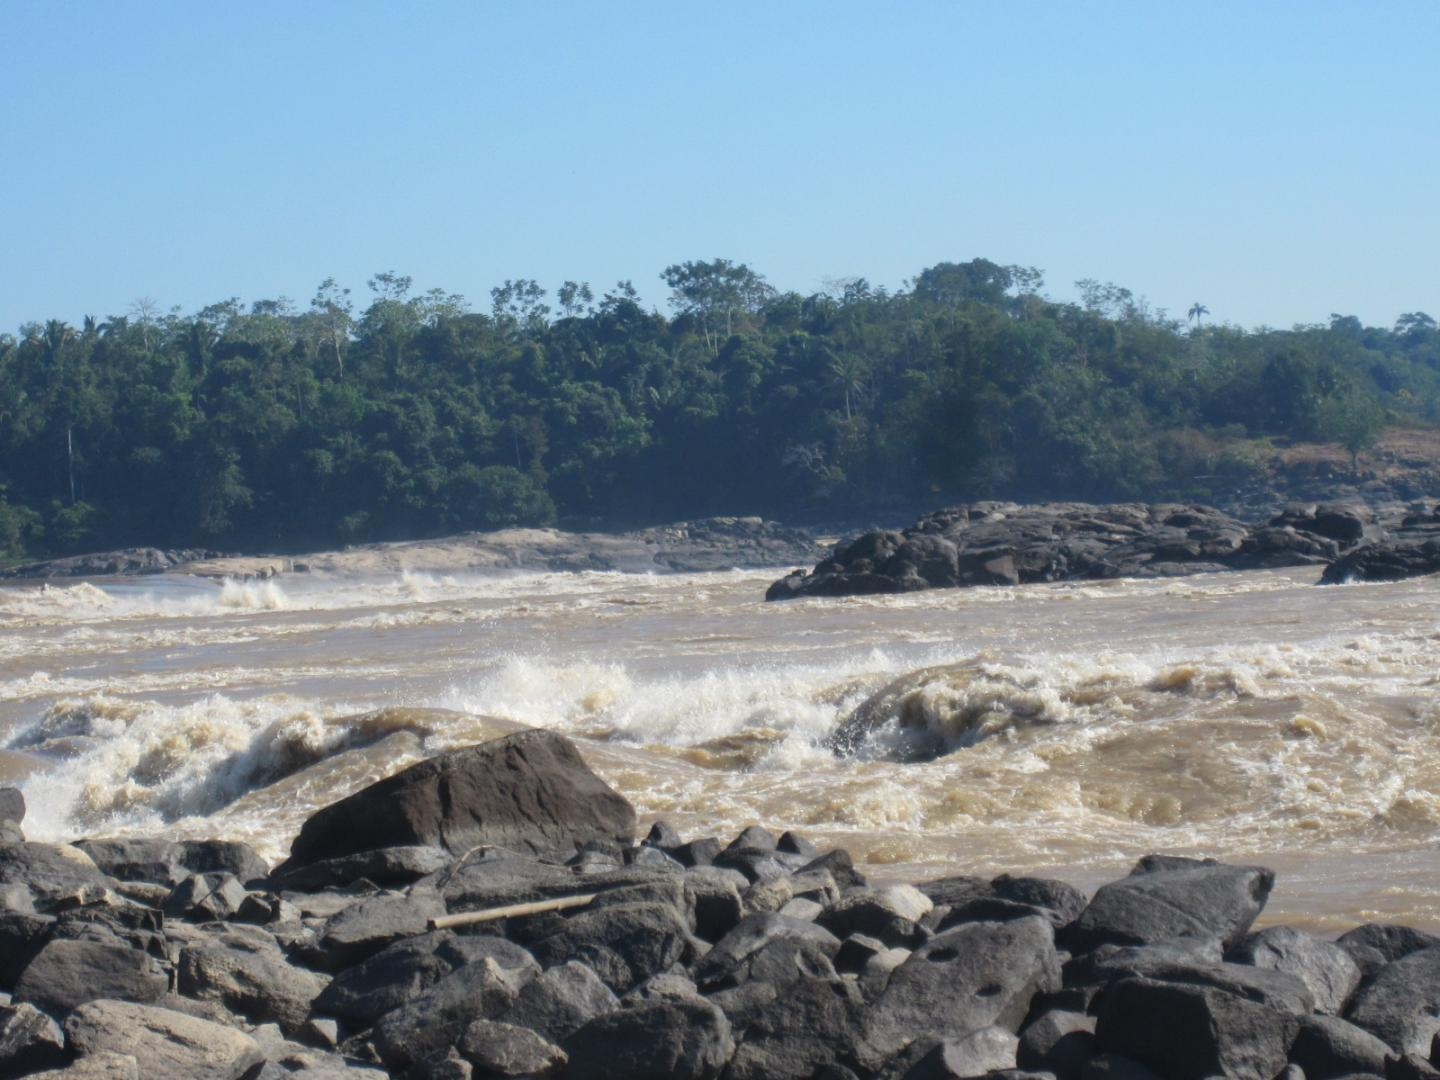 The authors believe that the Teotonio waterfall is what attracted people to this location for over 9,000 years, as it was an extremely rich fishing location and an obligatory stopping point for people traveling by boat on this stretch of the Madeira river. It was the location of a fishing village (the village of Teotonio) until 2011, when residents were forced to move inland ahead of dam construction. The dam submersed the village and the waterfall. Eduardo Neves, 2011